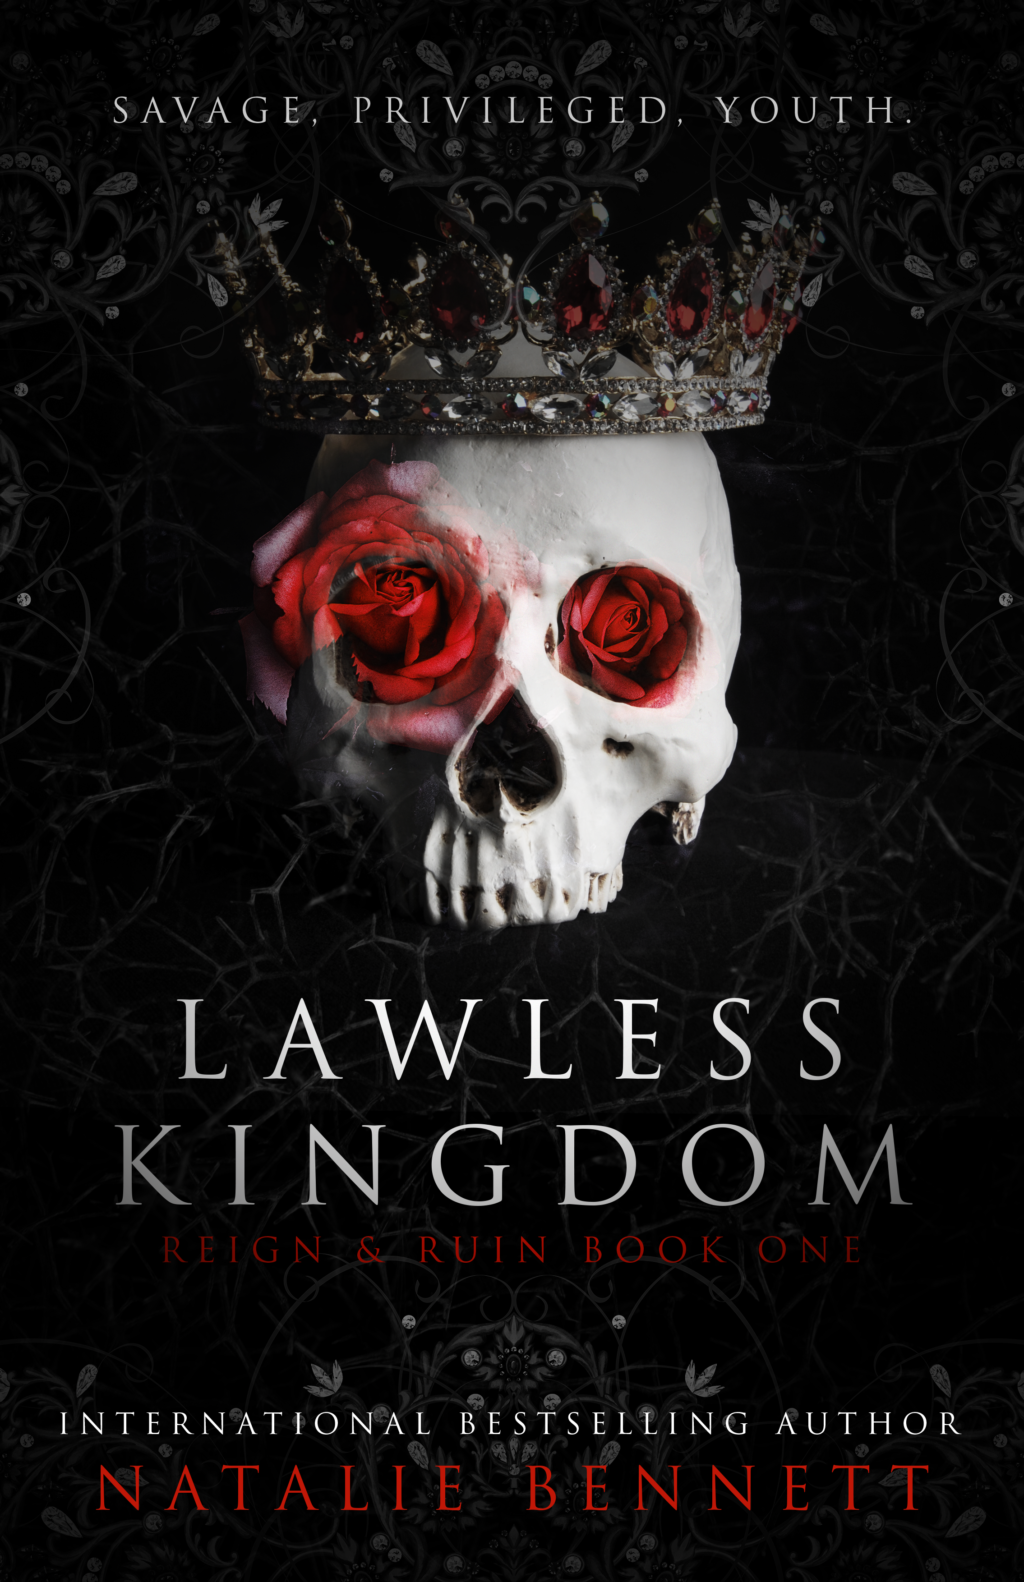 Lawless Kingdom (Reign & Ruin #1) by Natalie Bennett